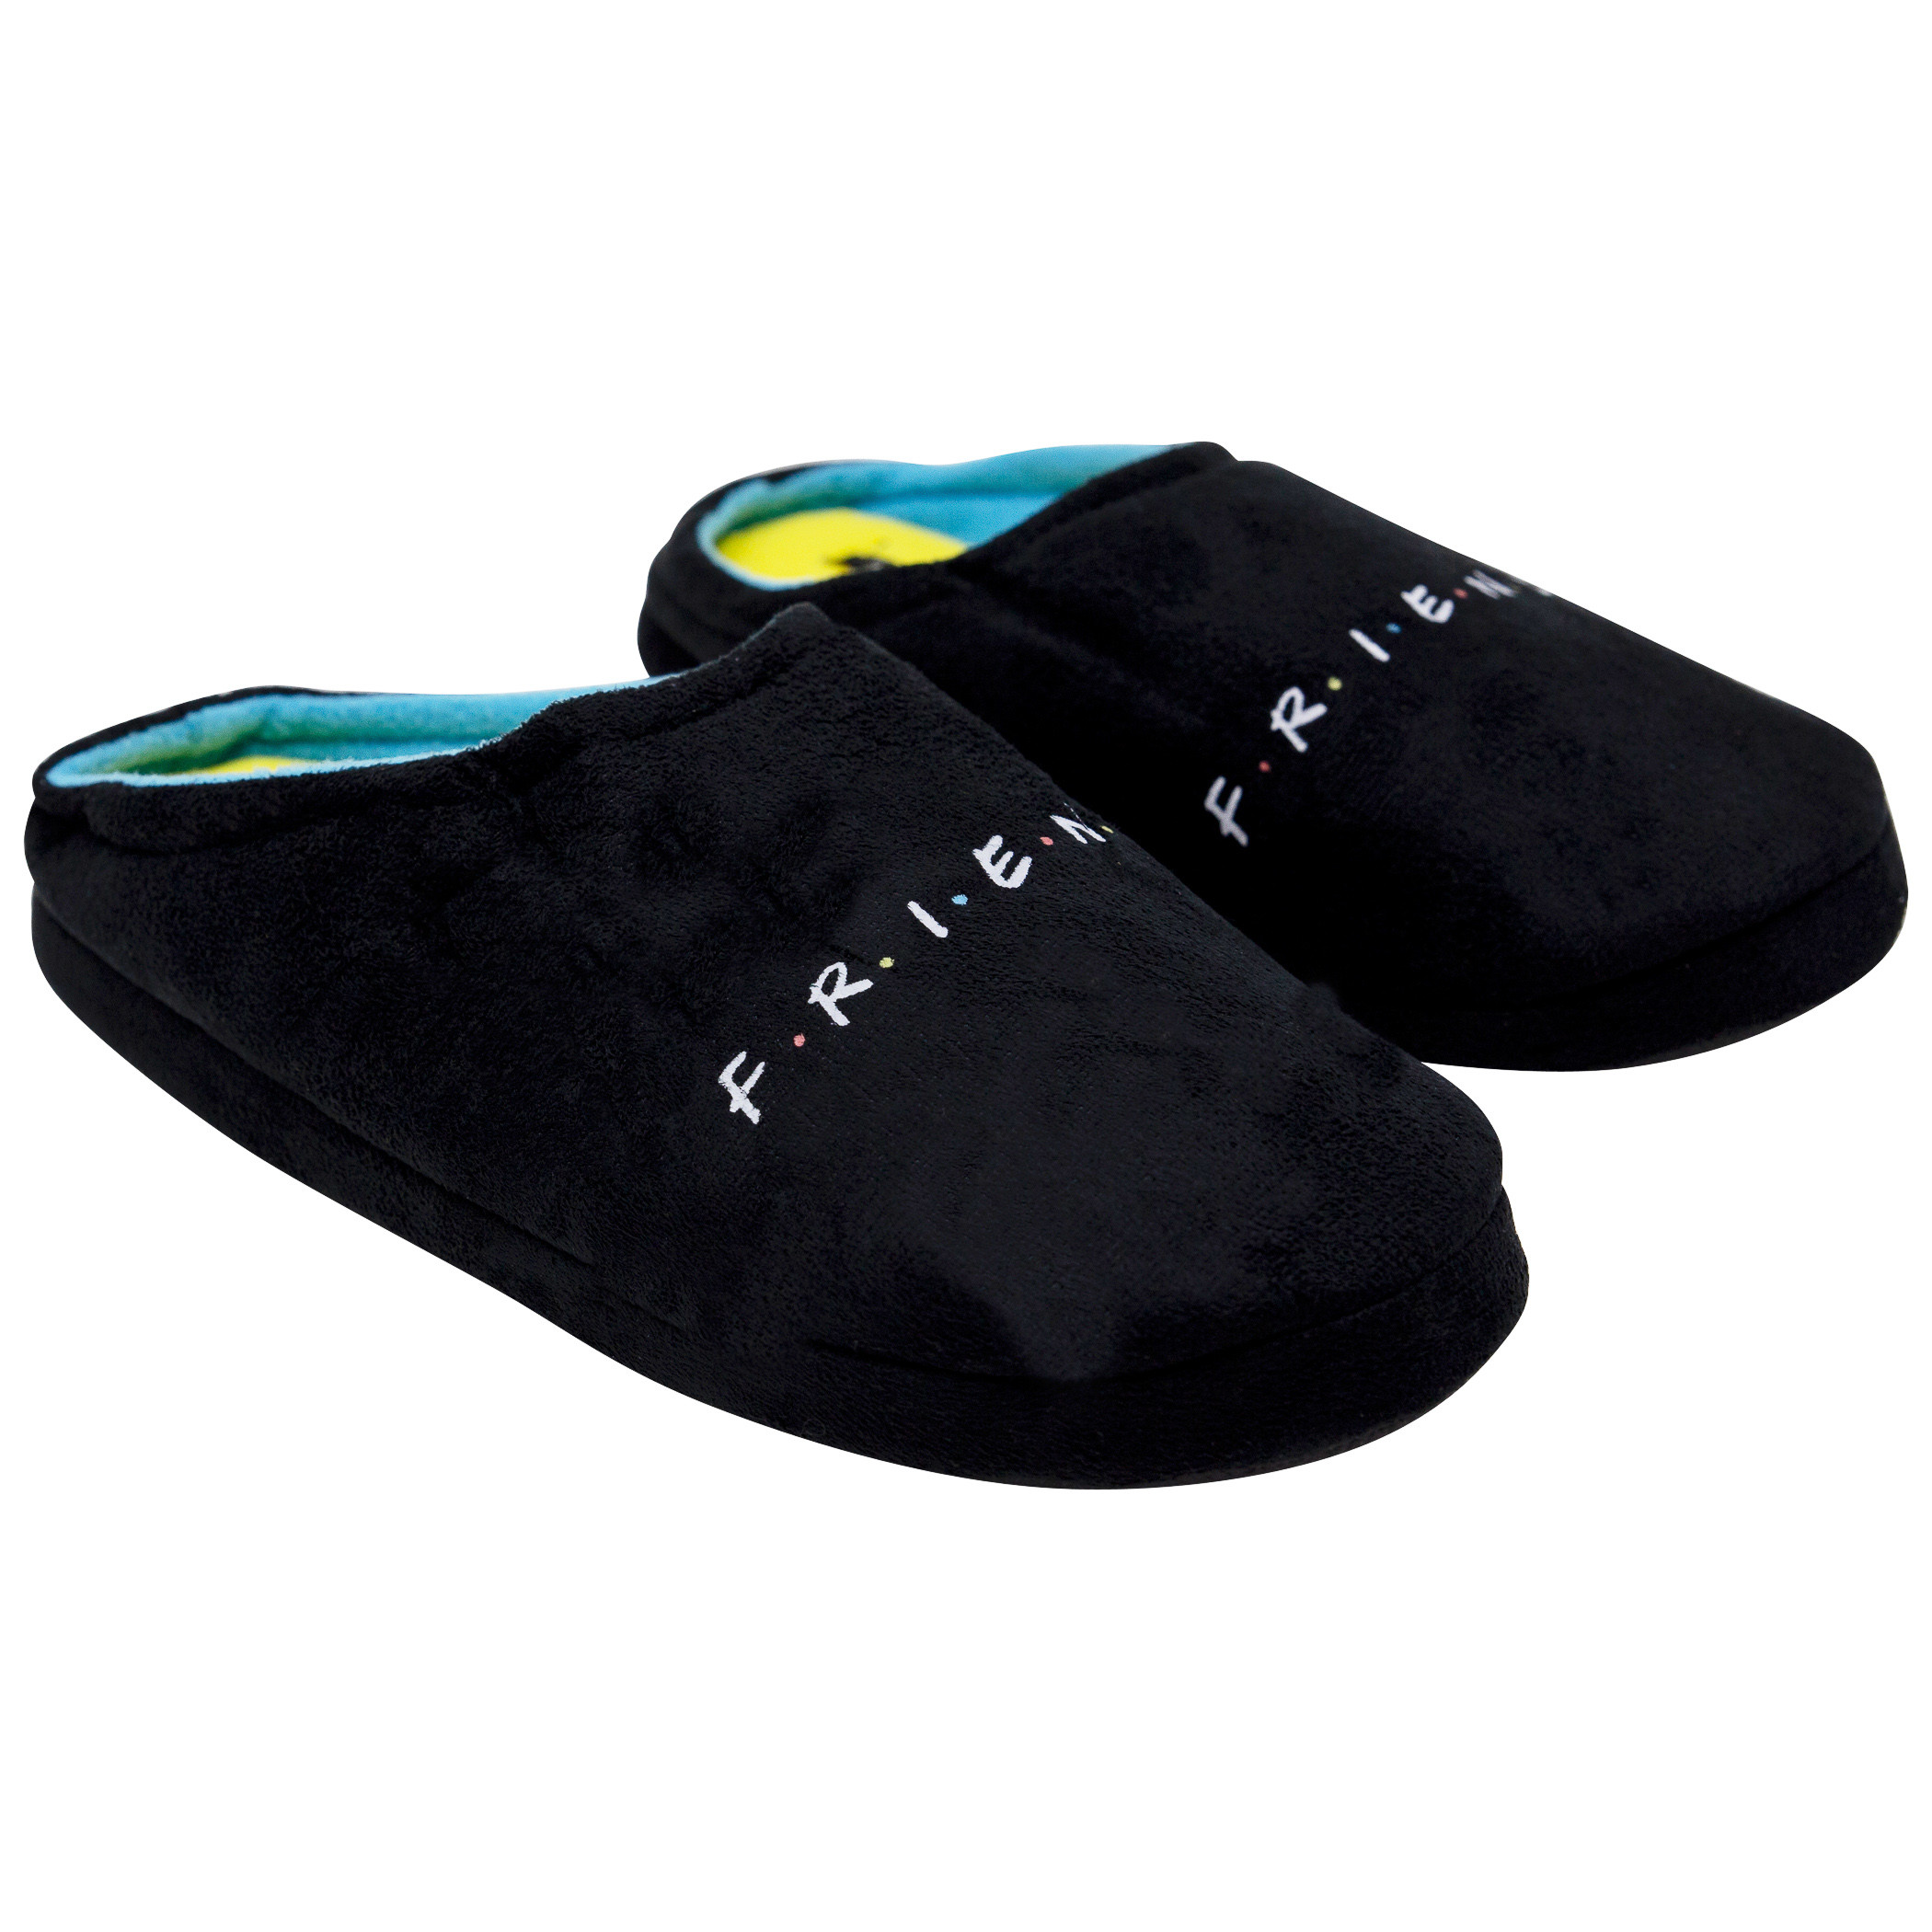 Zapatilla Friends unisex